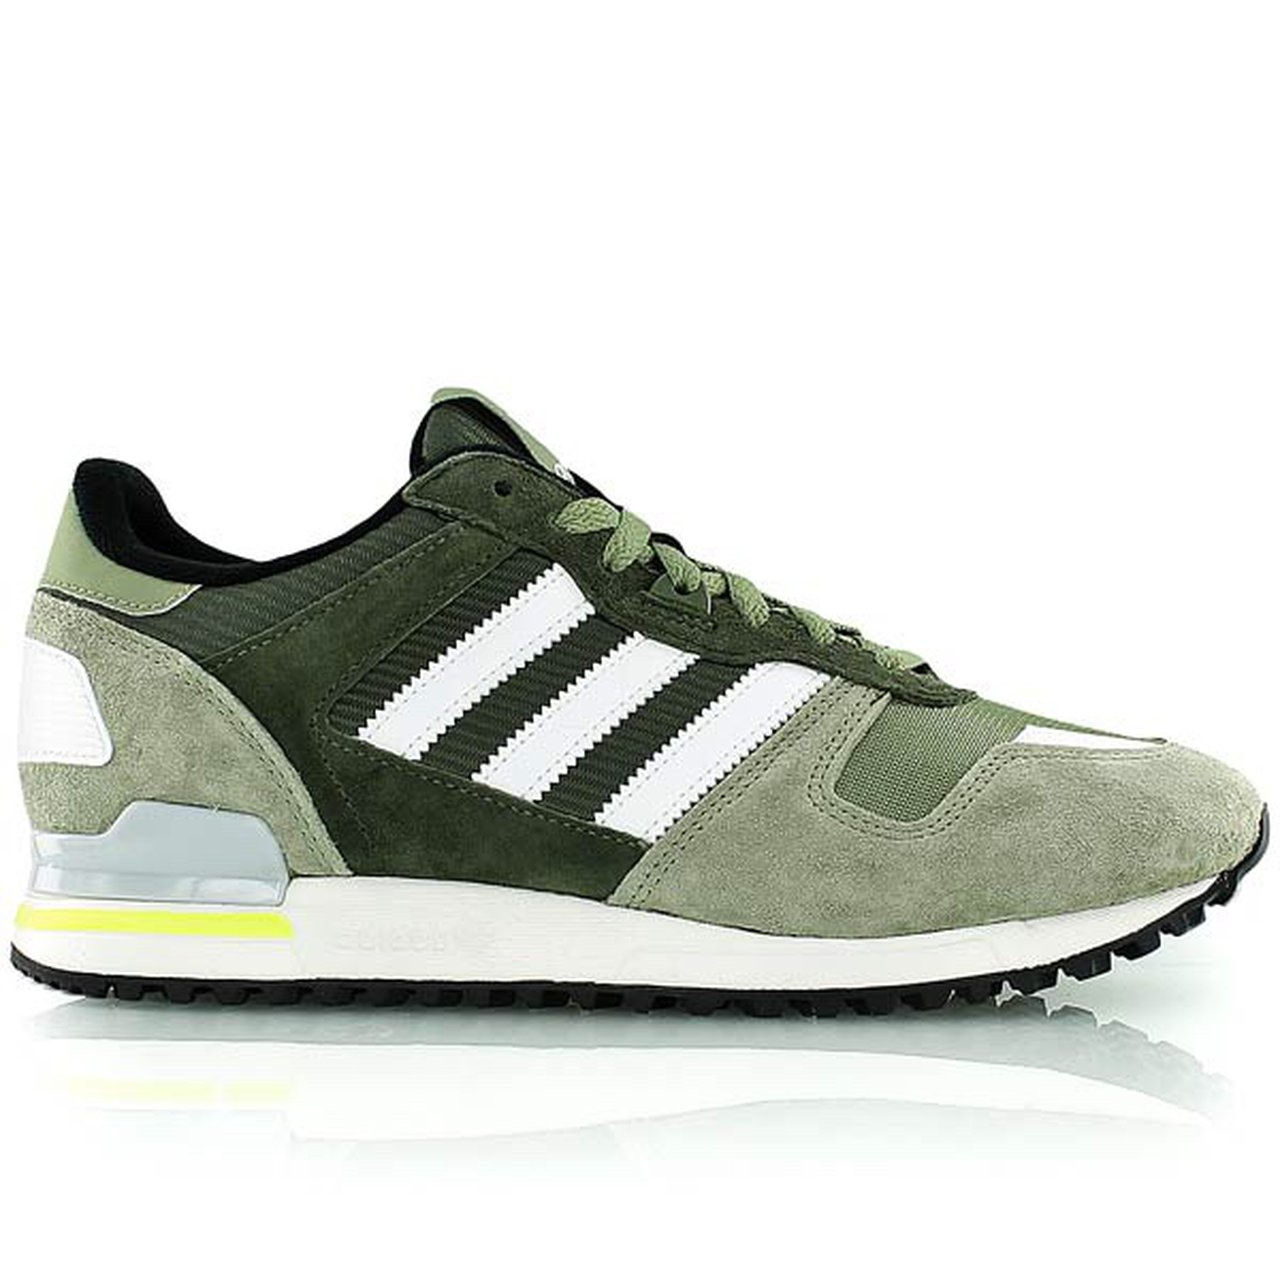 super popular 688ce 921cf Size 5, Adidas ZX 700 Green and White Trainers Worn a few - - Depop